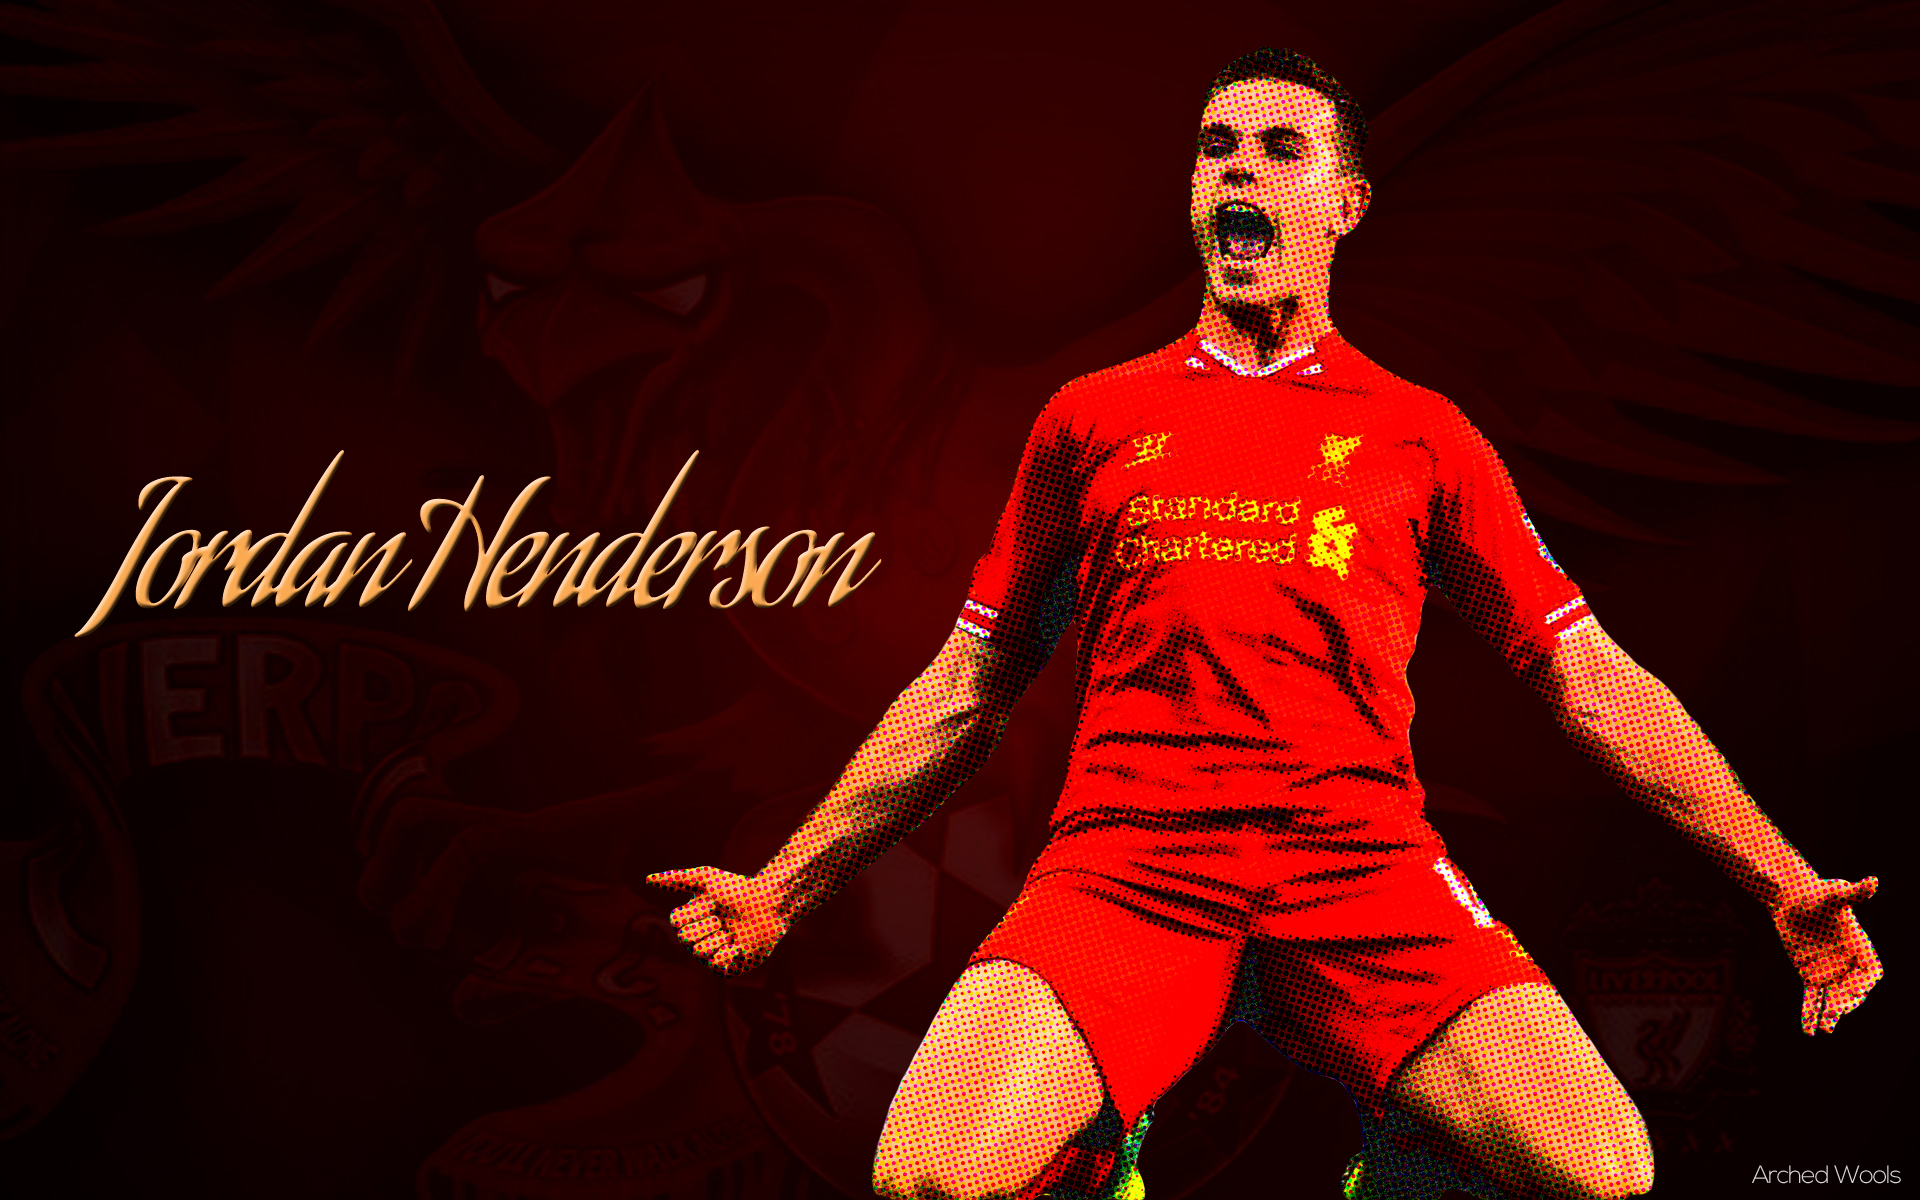 F-series Jordan Henderson Wallpaper HD | Unthought Conundrums